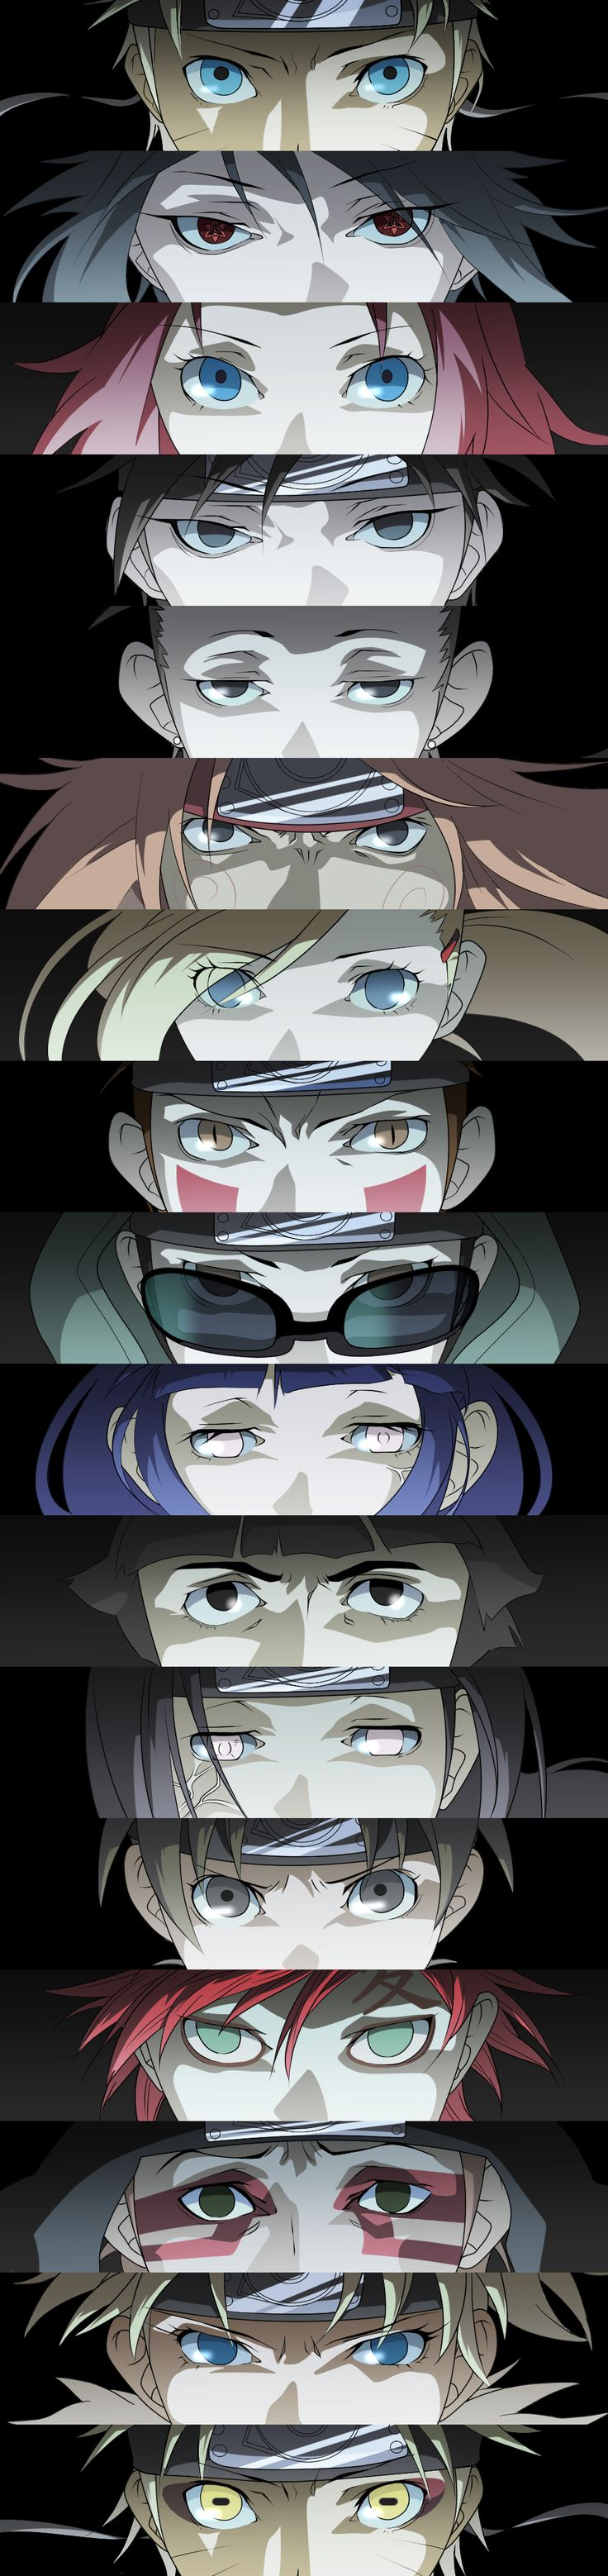 Anime Characters With 3 Eyes : Naruto shippuden eyes i love this pic